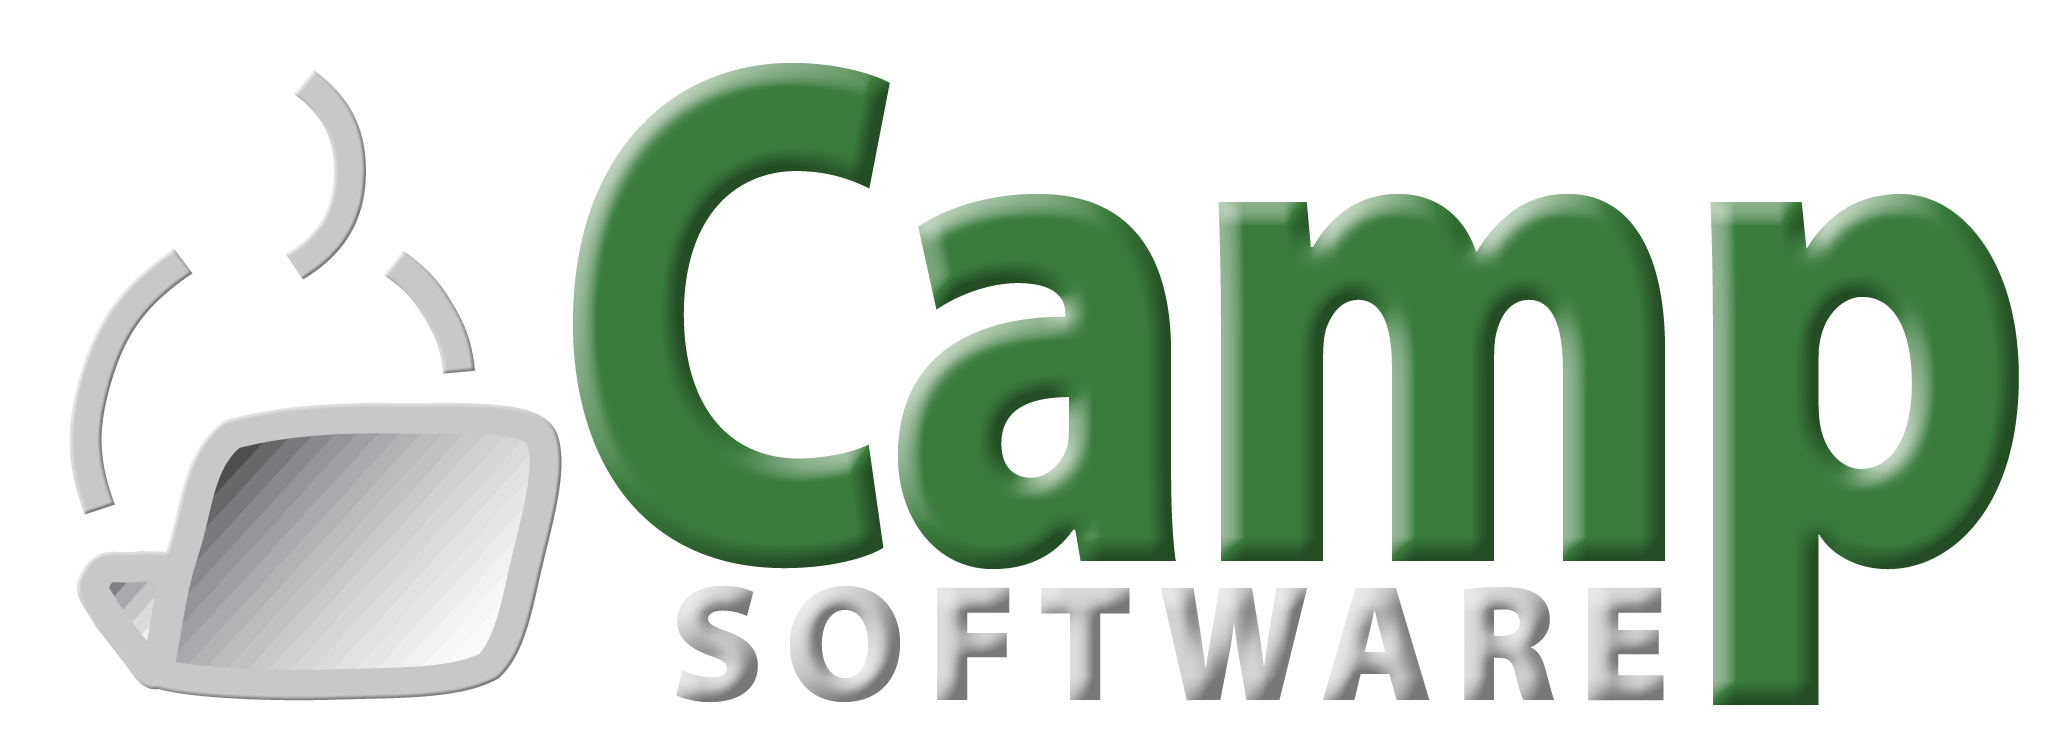 Blog | CampSoftware